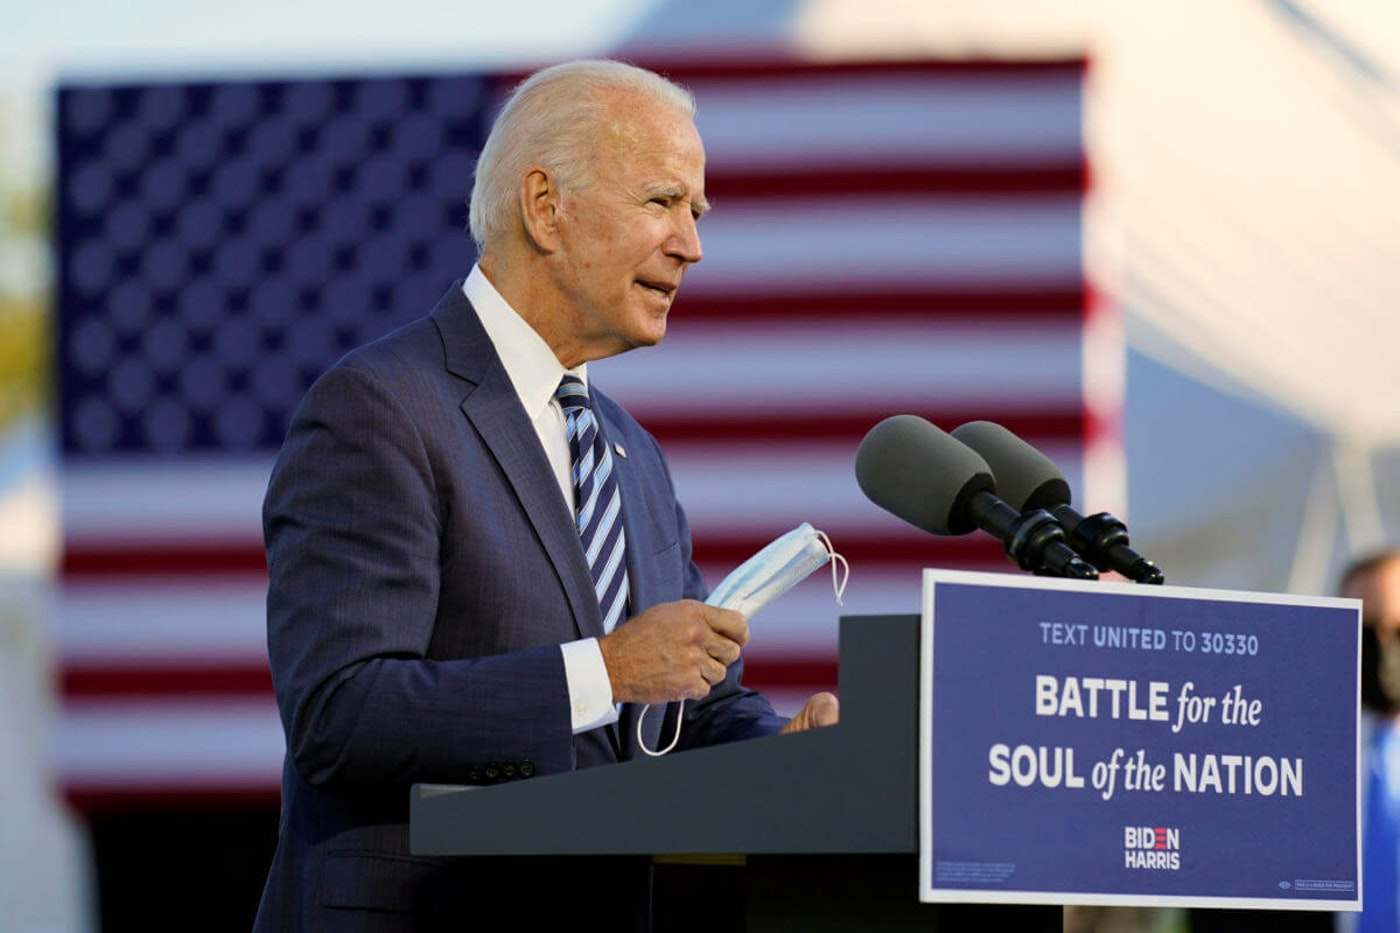 Democratic presidential nominee Joe Biden and vice presidential nominee Sen. Kamala Harris are calling for unity as the election draws closer.